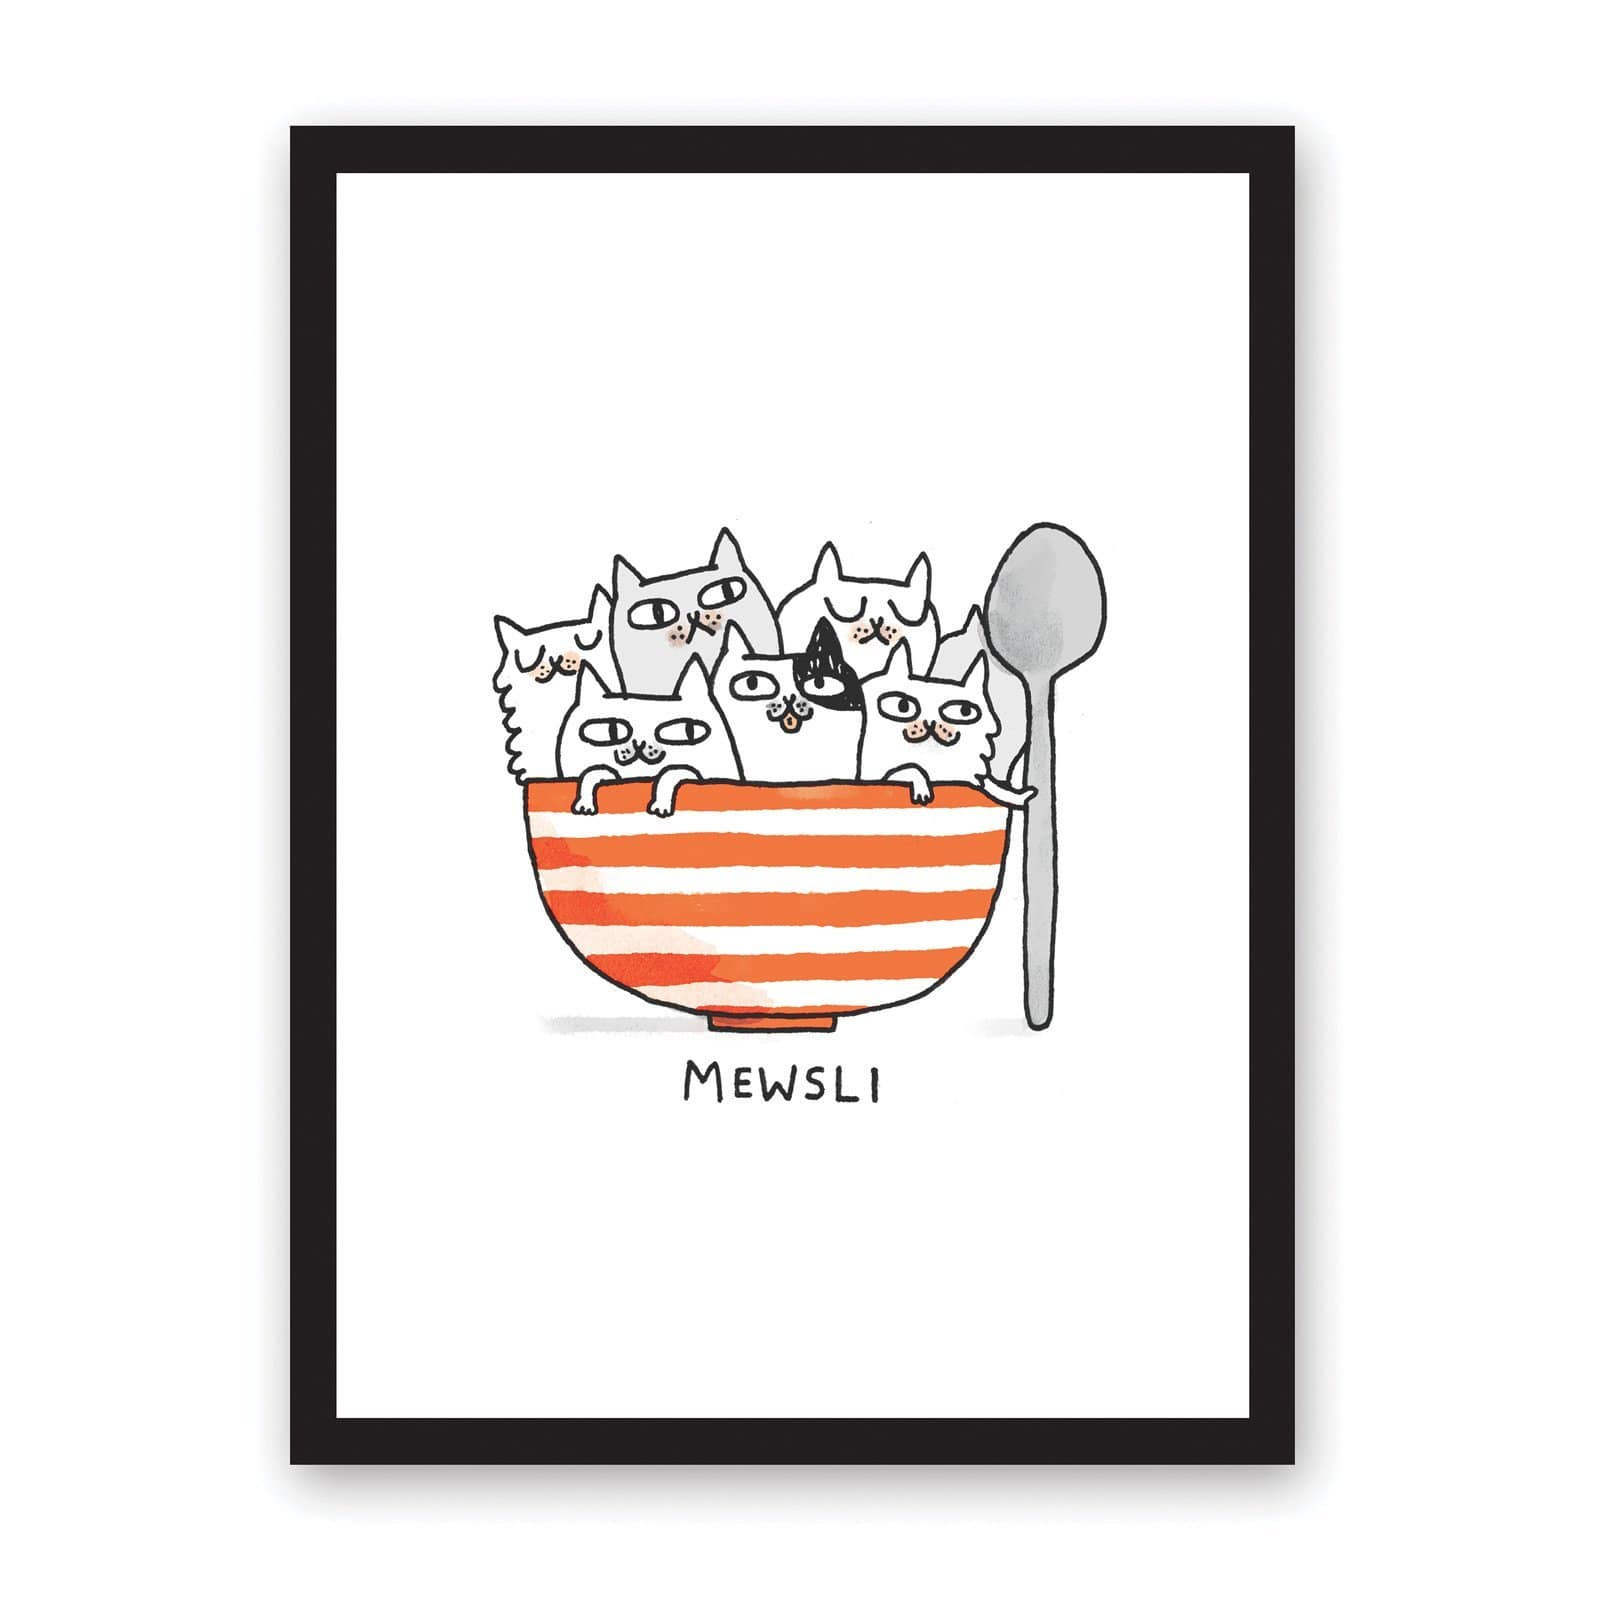 Gemma Correll illustration of striped bowl with kittens inside and holding a spoon, with Mewsli typography